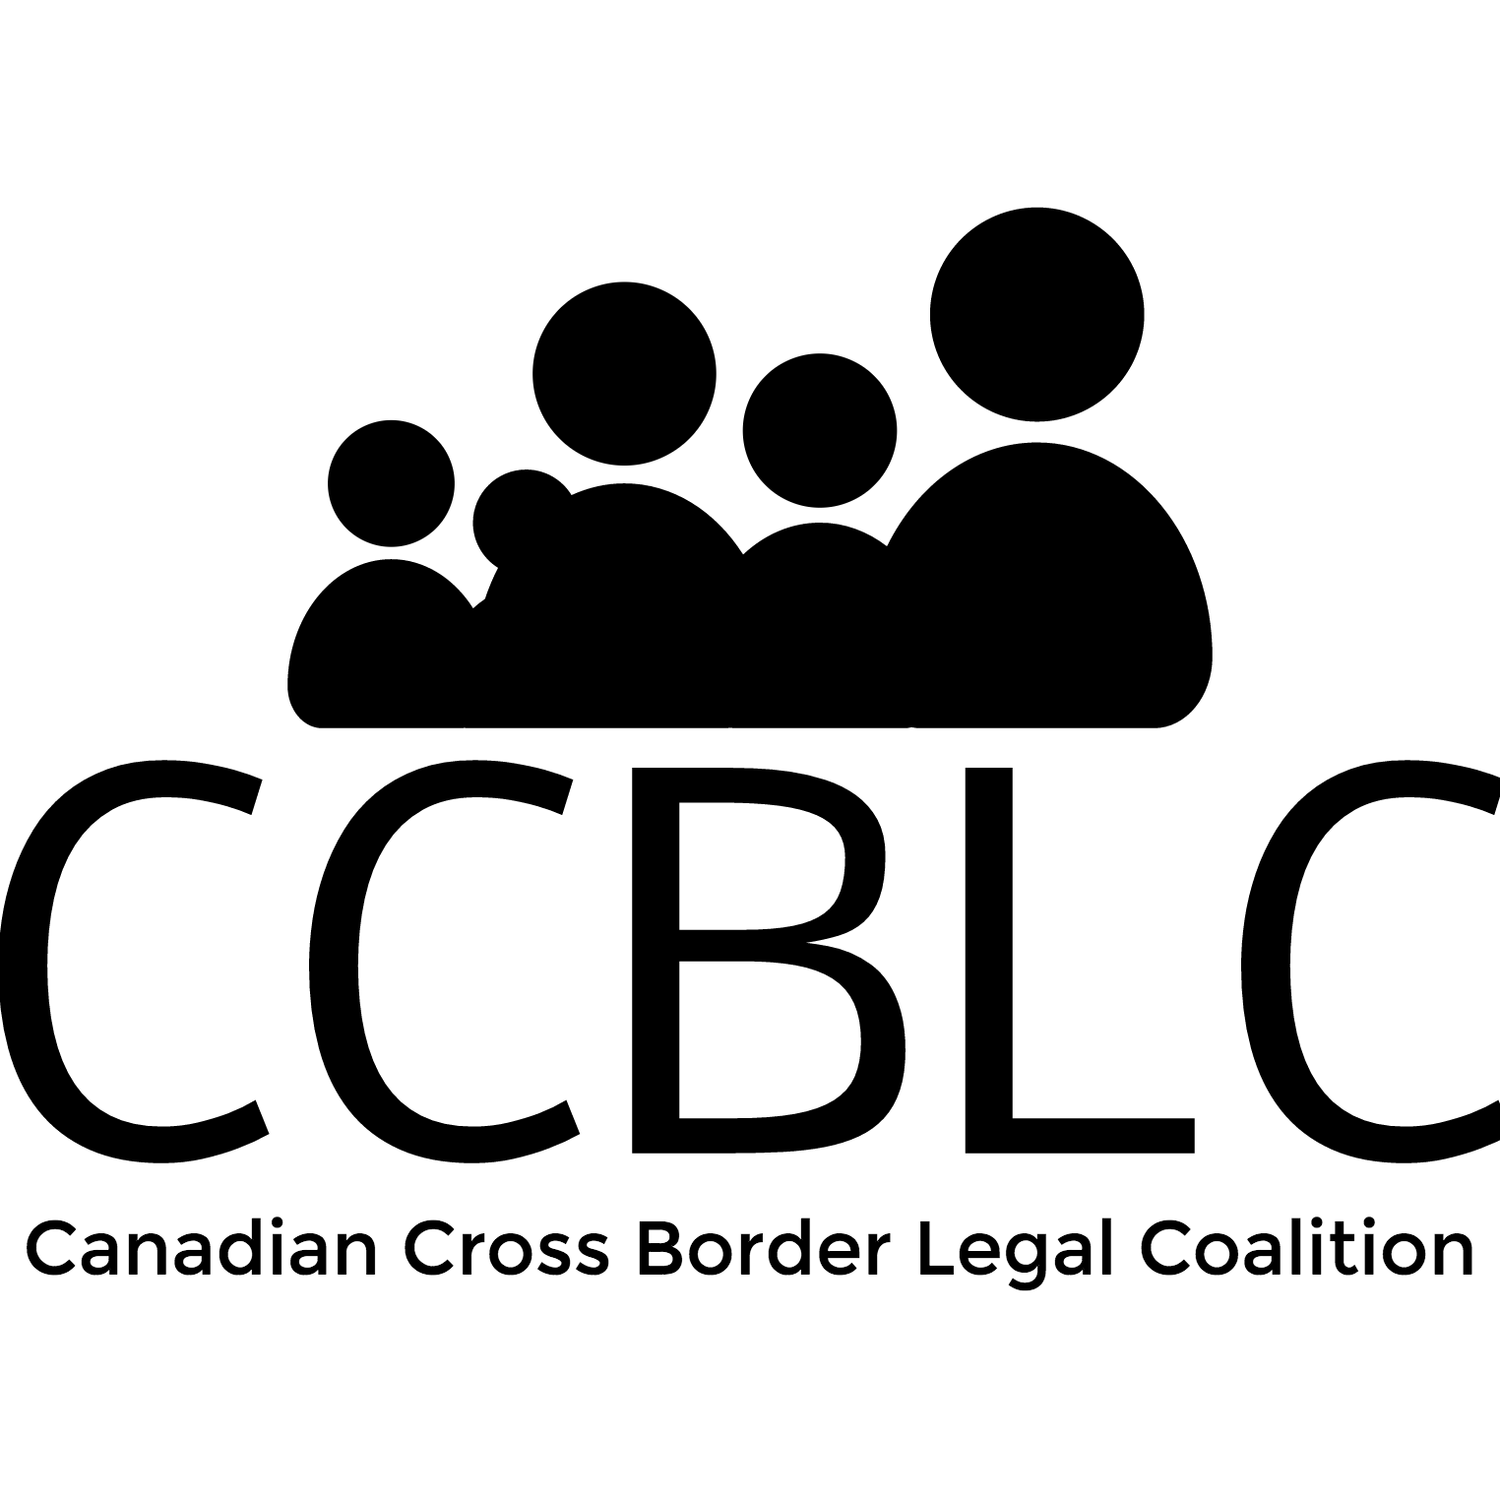 Canadian Cross-Border Legal Coalition